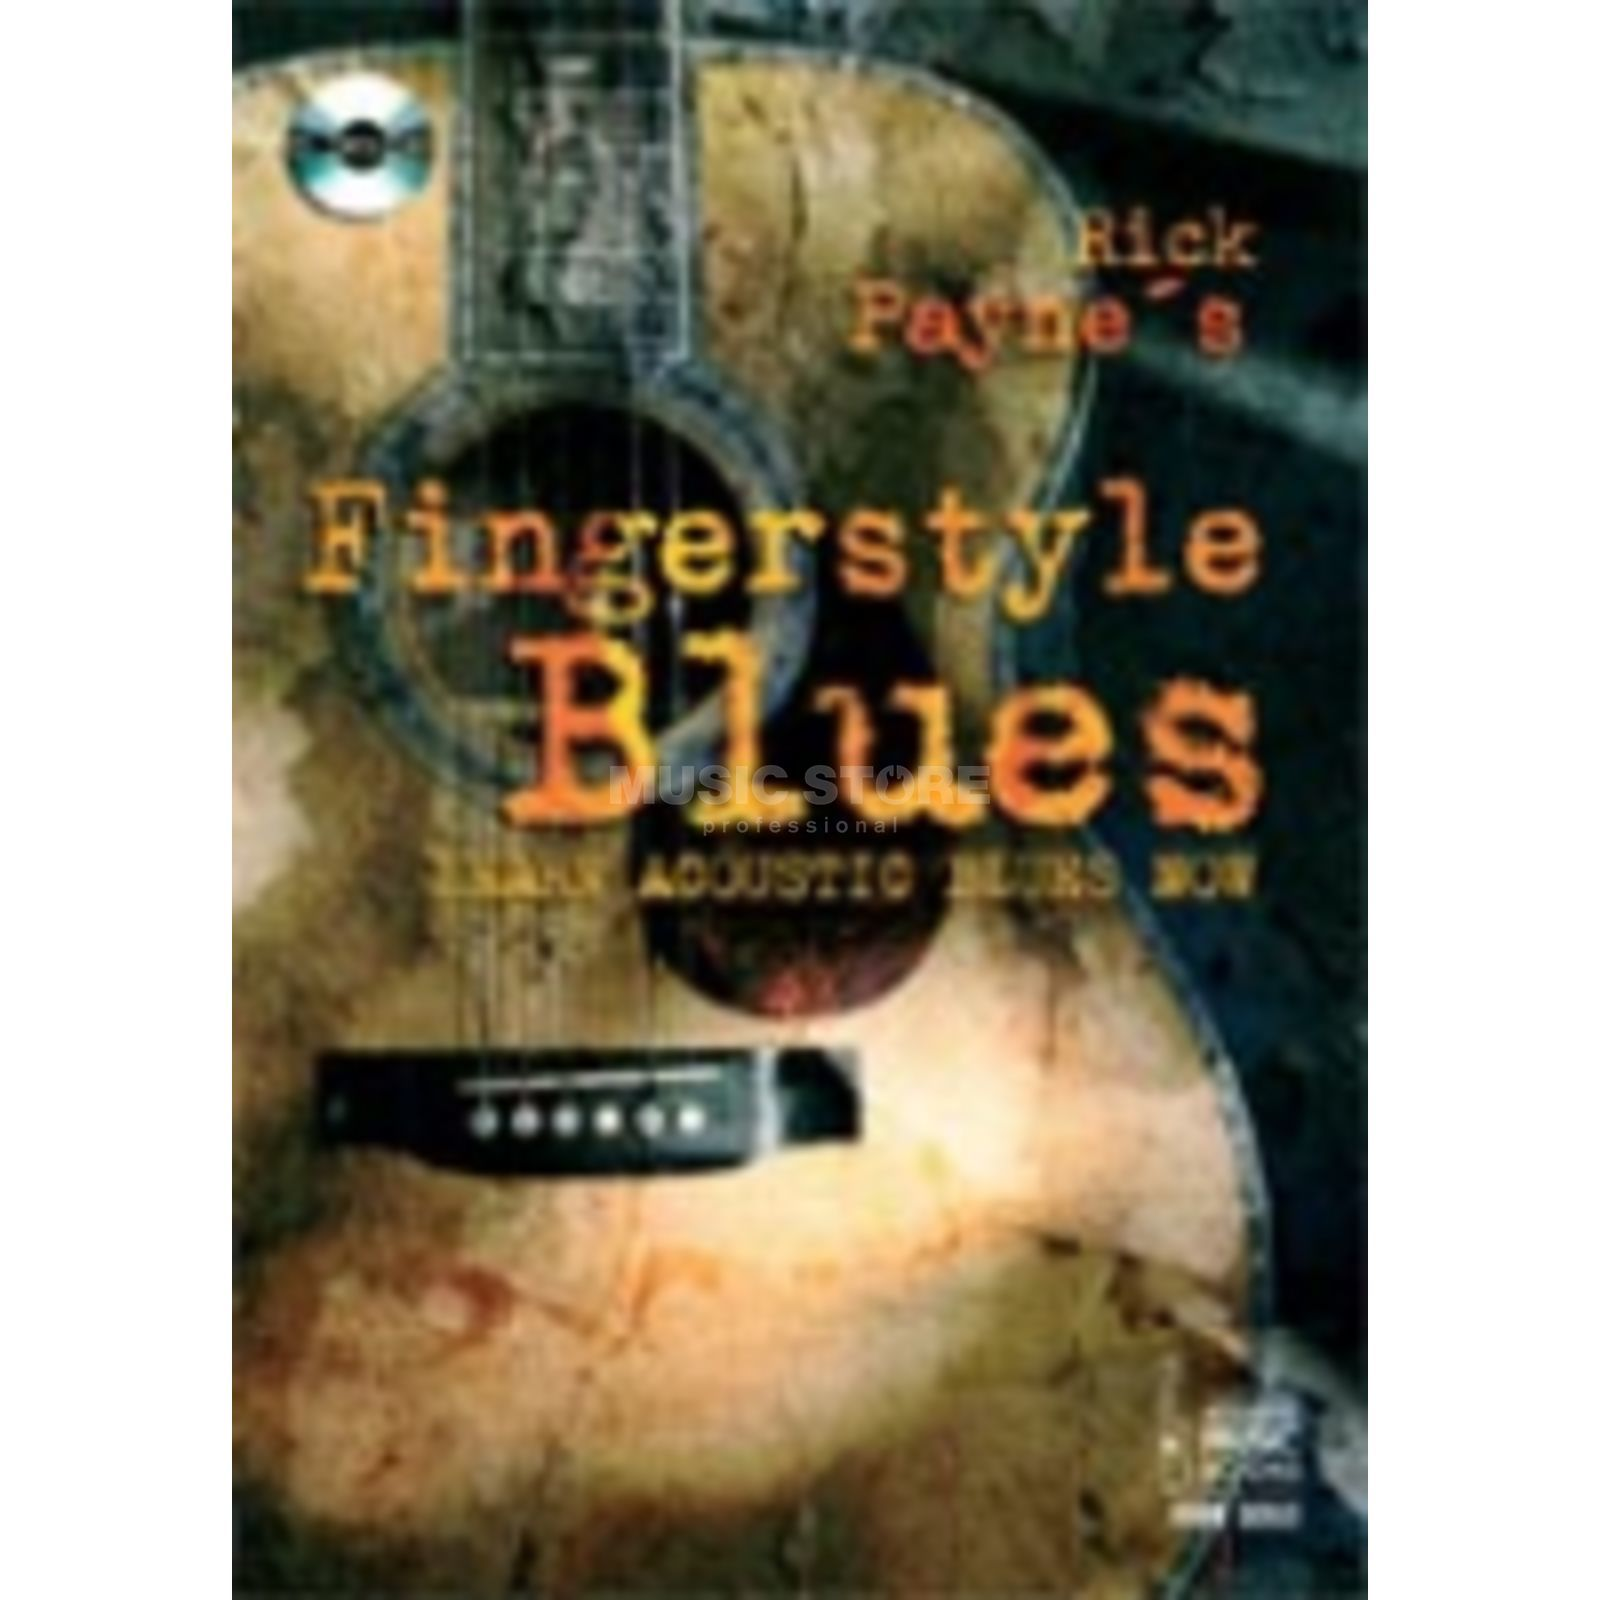 Acoustic Music Books Fingerstyle Blues Rick Payne, Git TAB/CD Produktbild